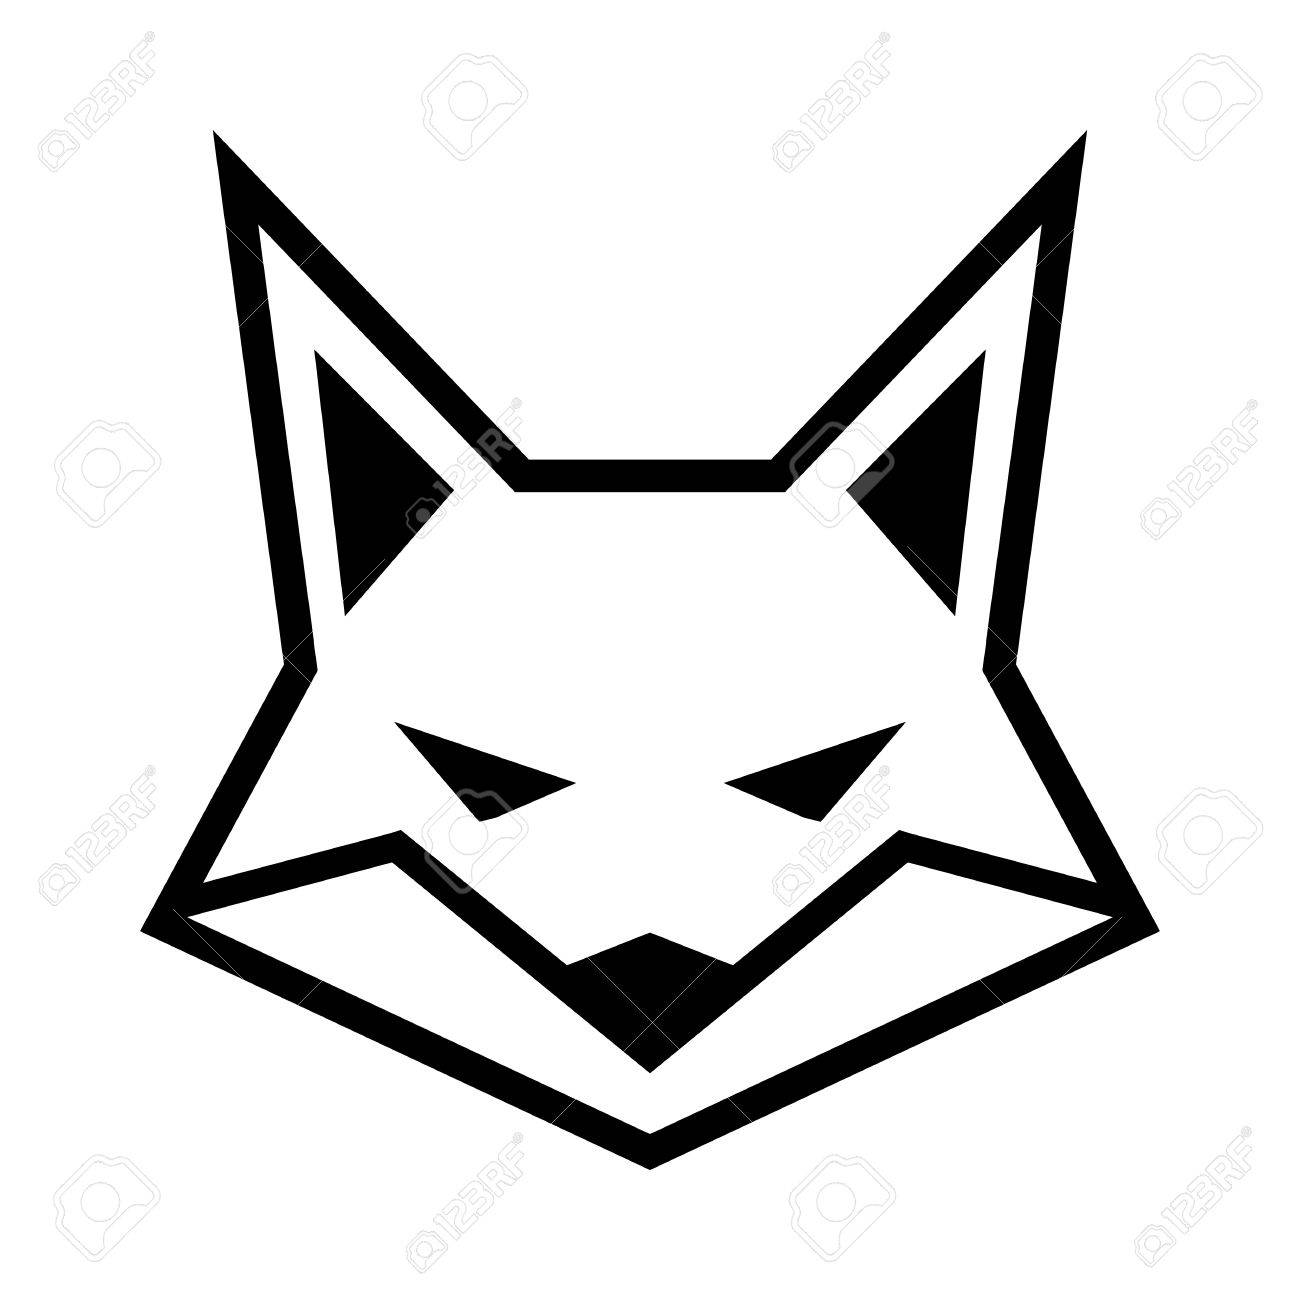 fox face logo vector icon royalty free cliparts vectors and stock rh 123rf com royalty free images vector art royalty free images vector art